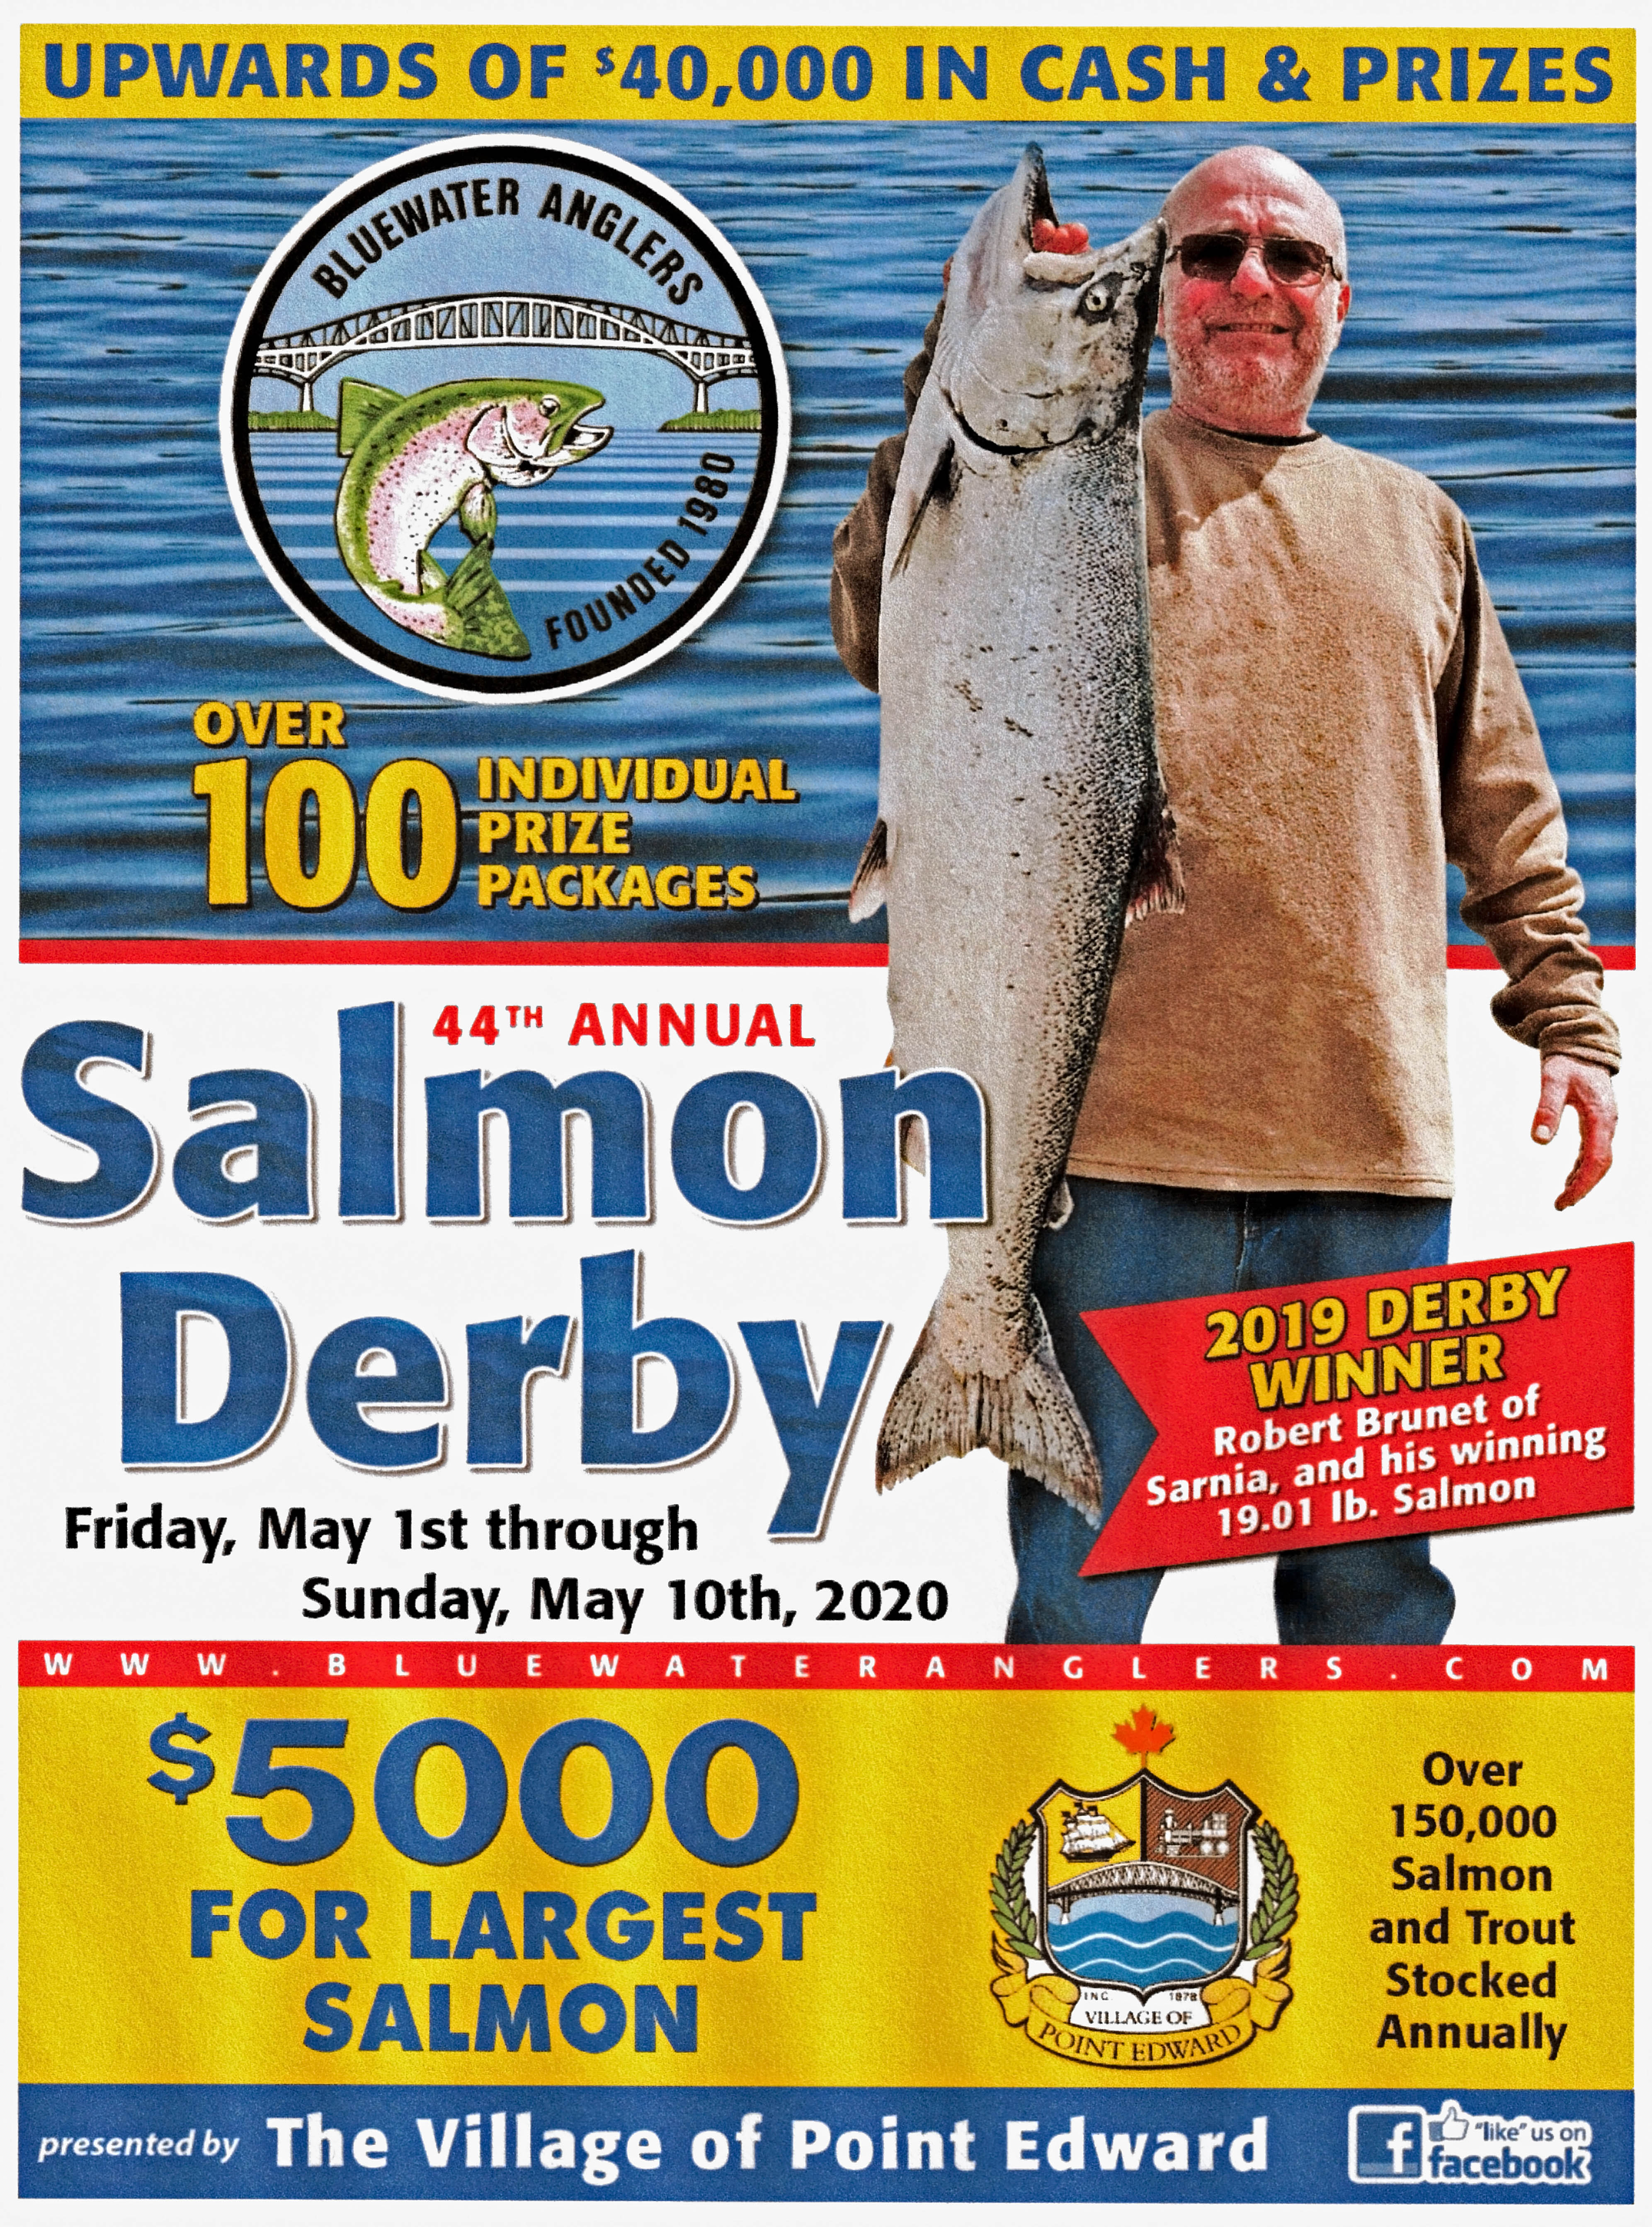 2020 Bluewater Anglers Salmon Derby Poster